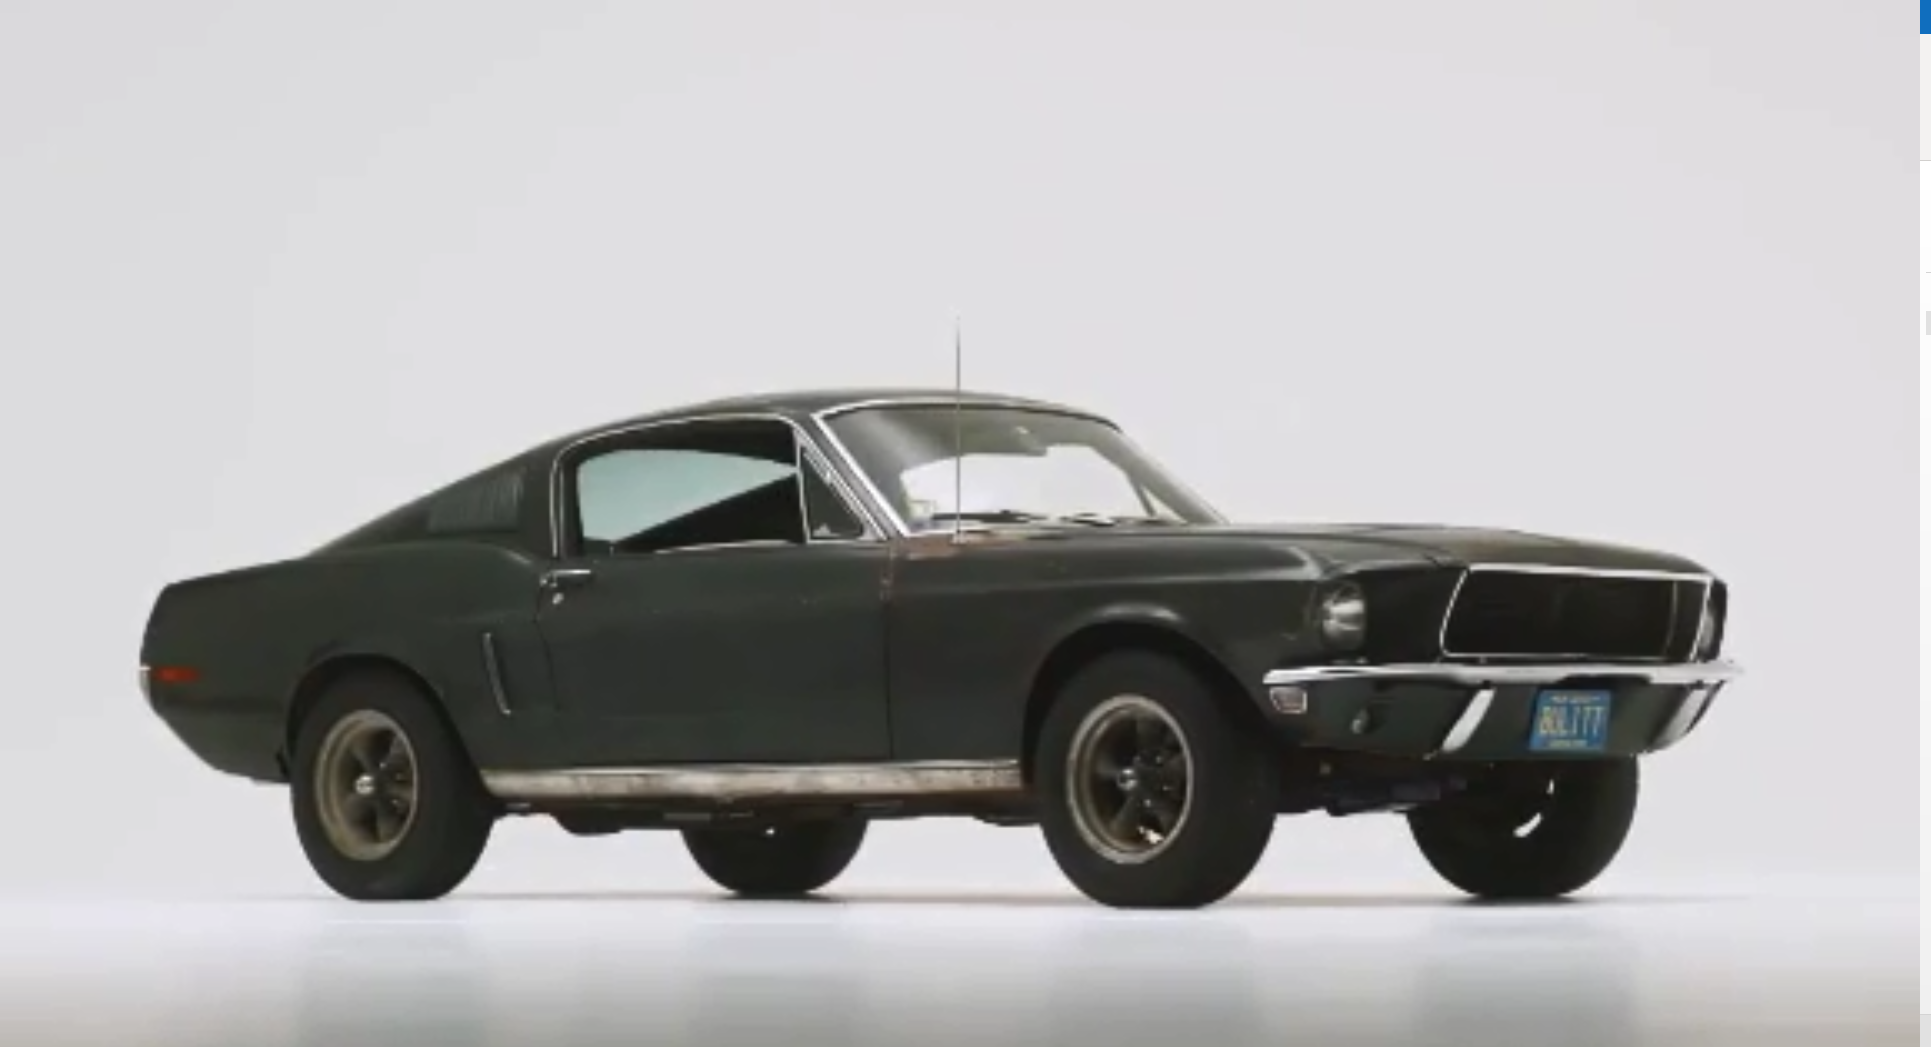 3 7 Million Ford Mustang Driven In The Movie Bullitt Sells For Record Price